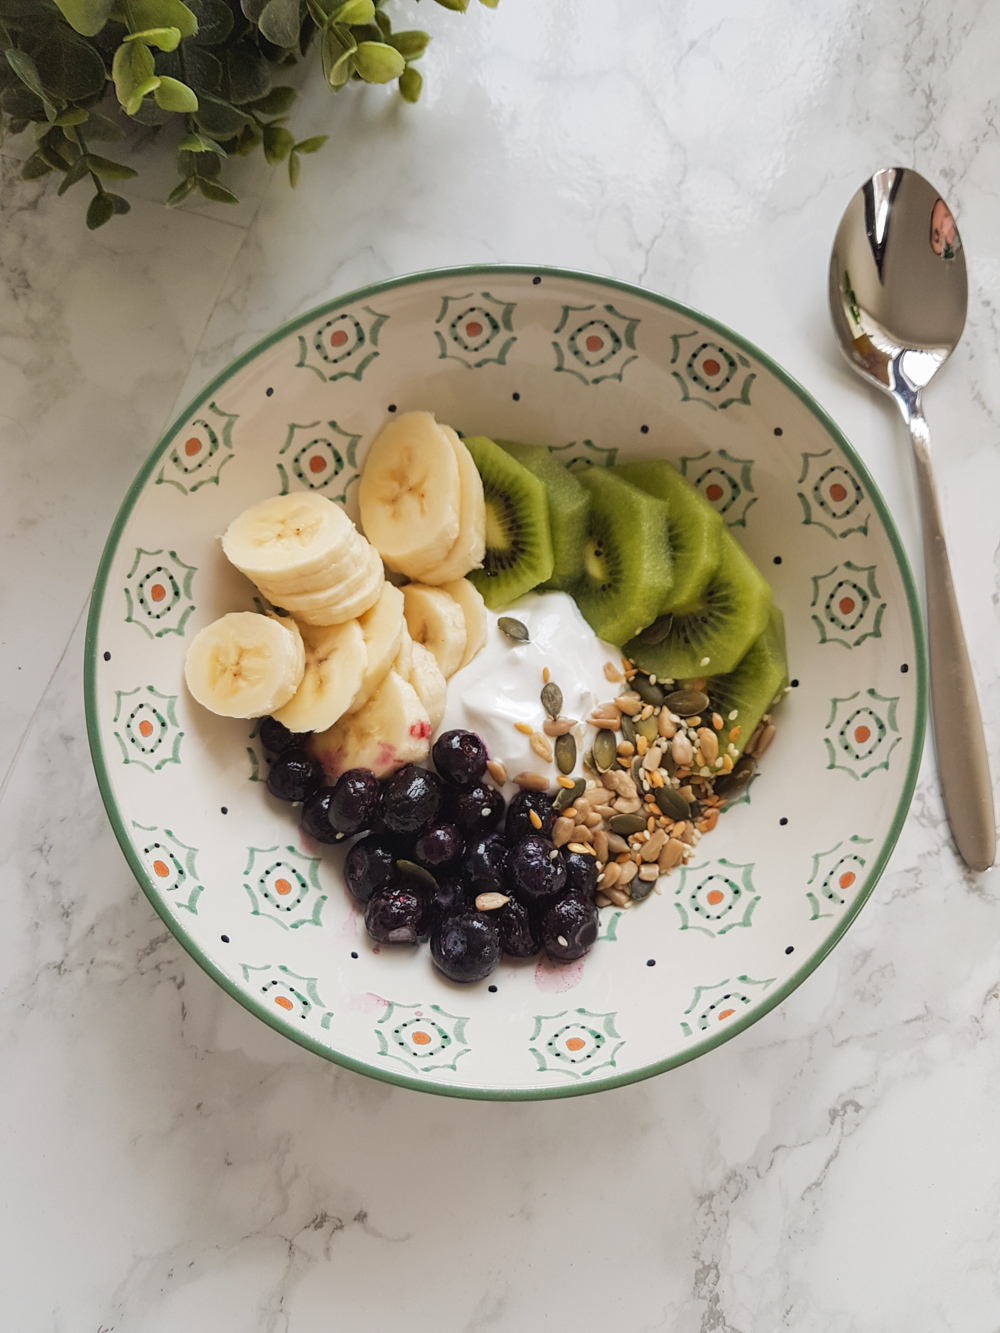 Vegan Breakfast Bowl - Banana, Kiwi, Seed Mix, Blueberries and Vegan Coconut Yogurt